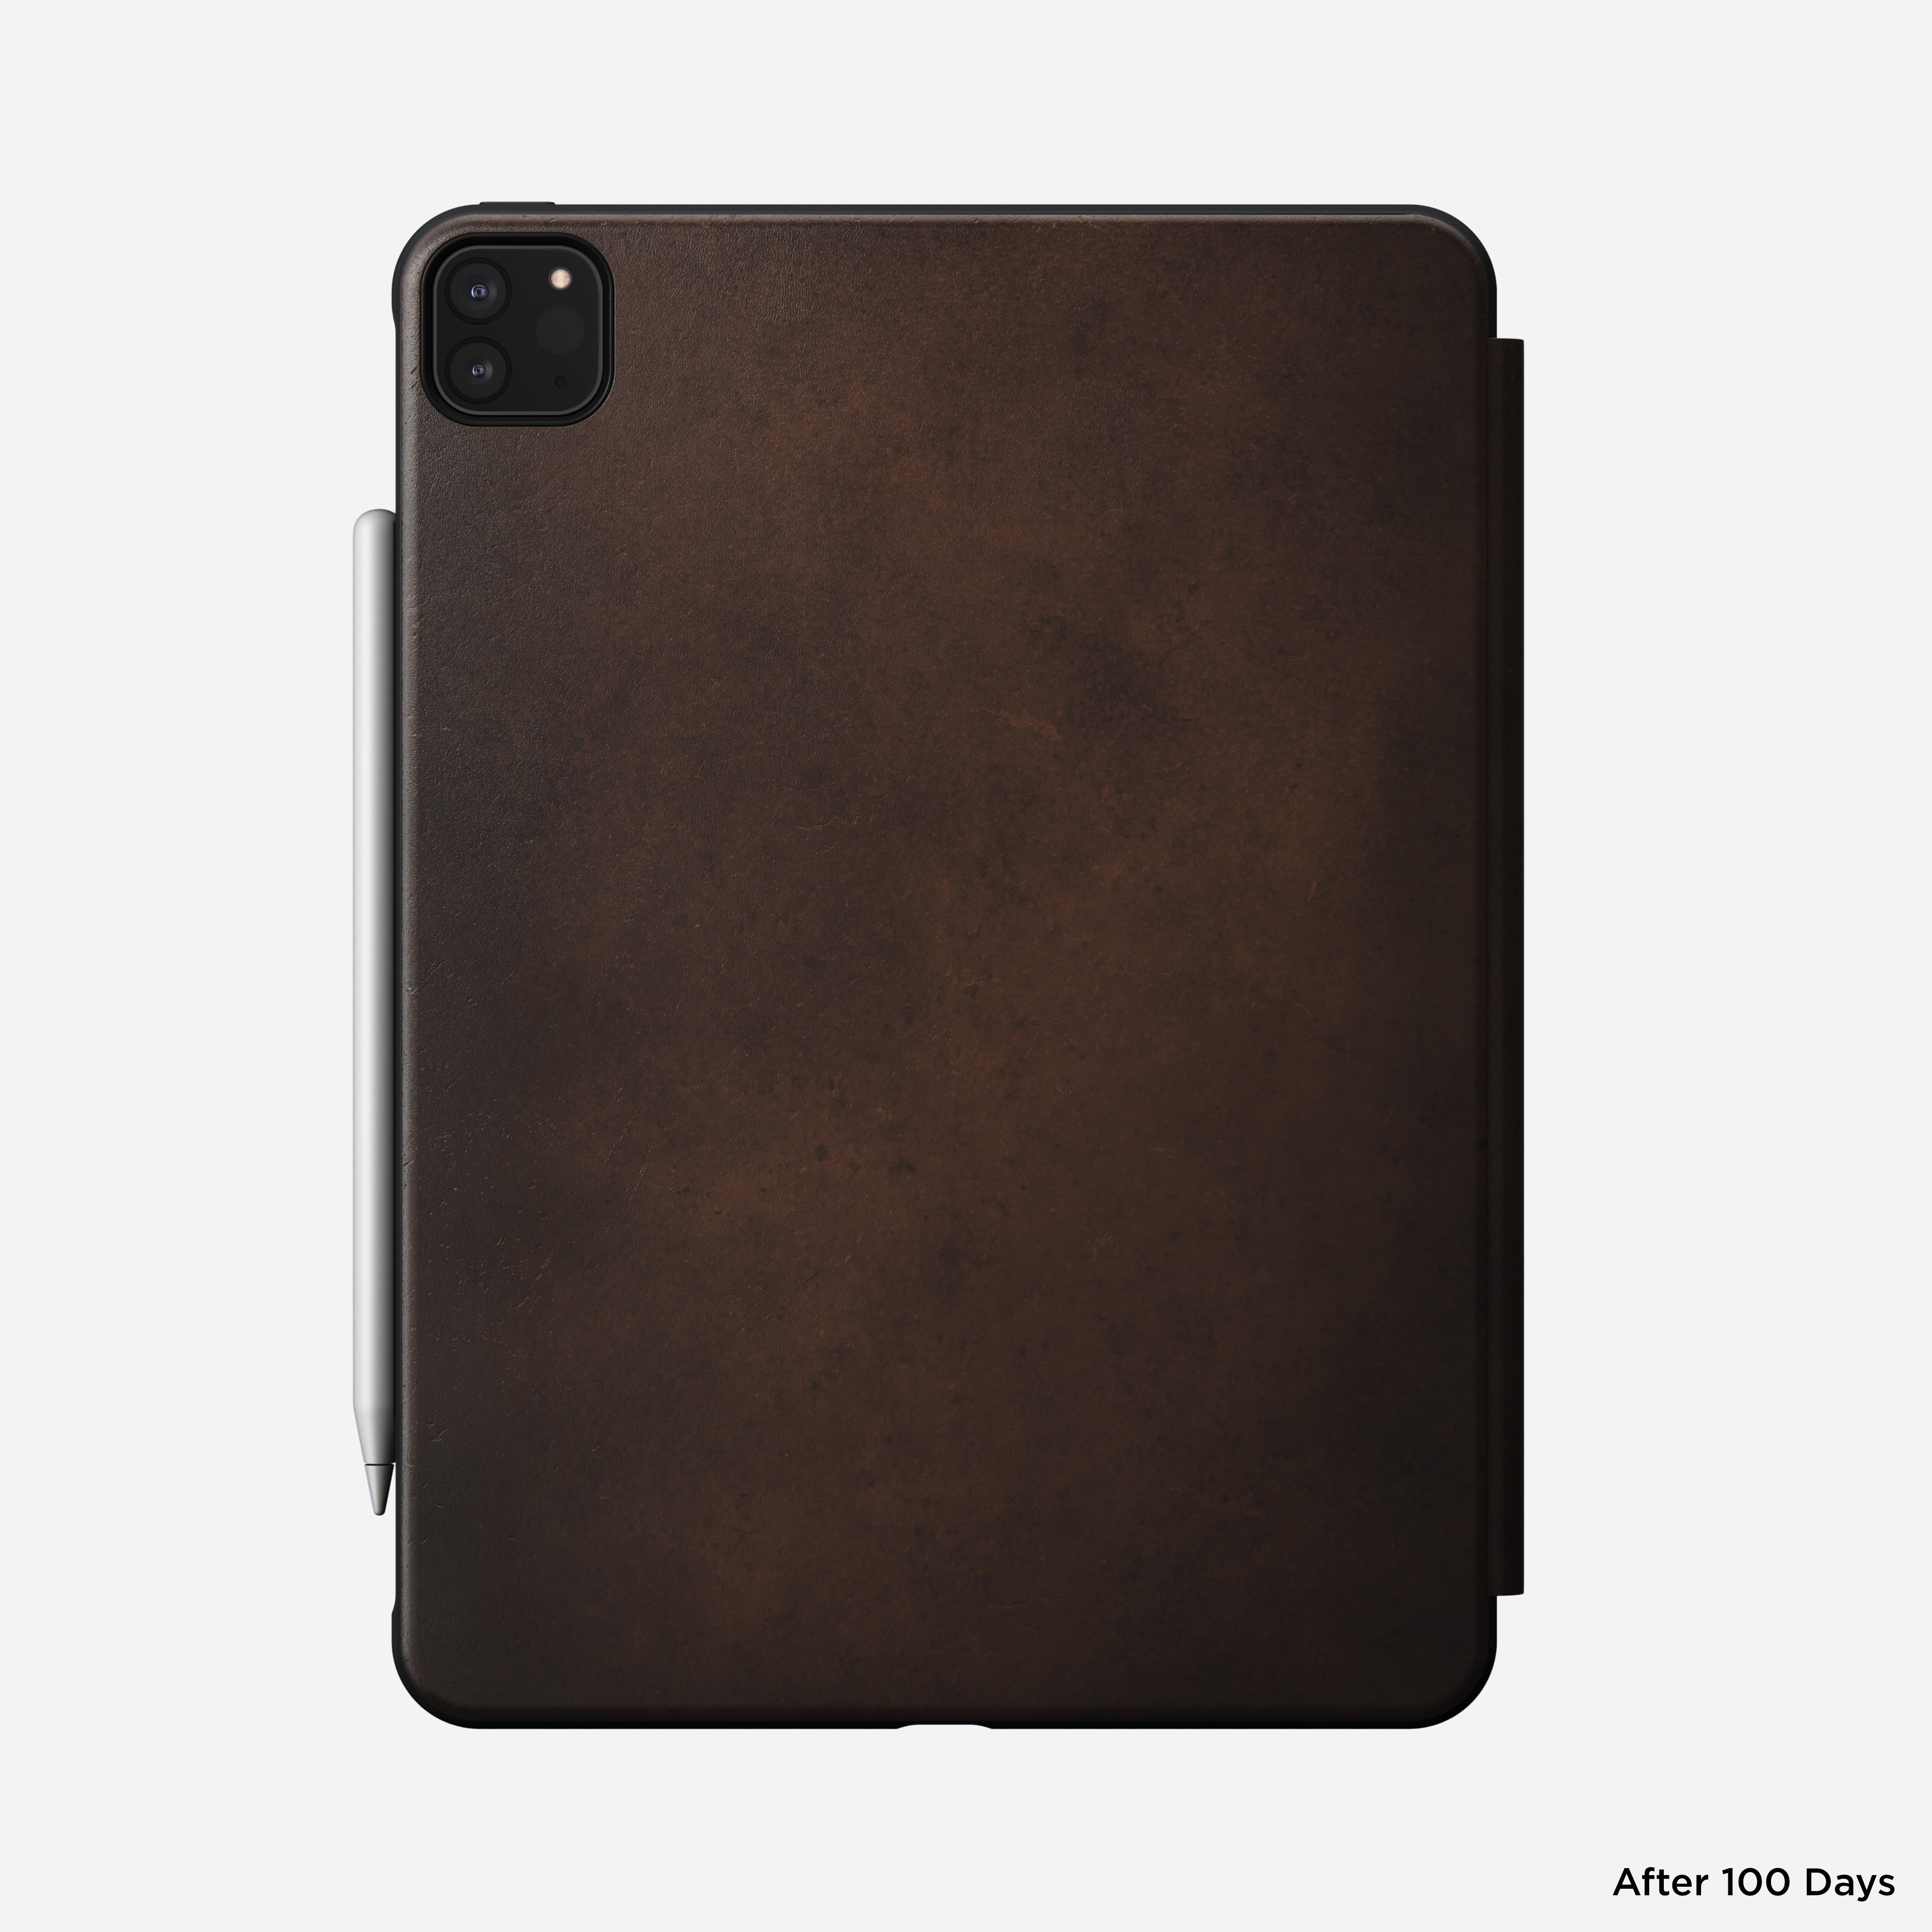 Rugged folio horween leather rustic brown ipad pro 11 inch 2nd generation